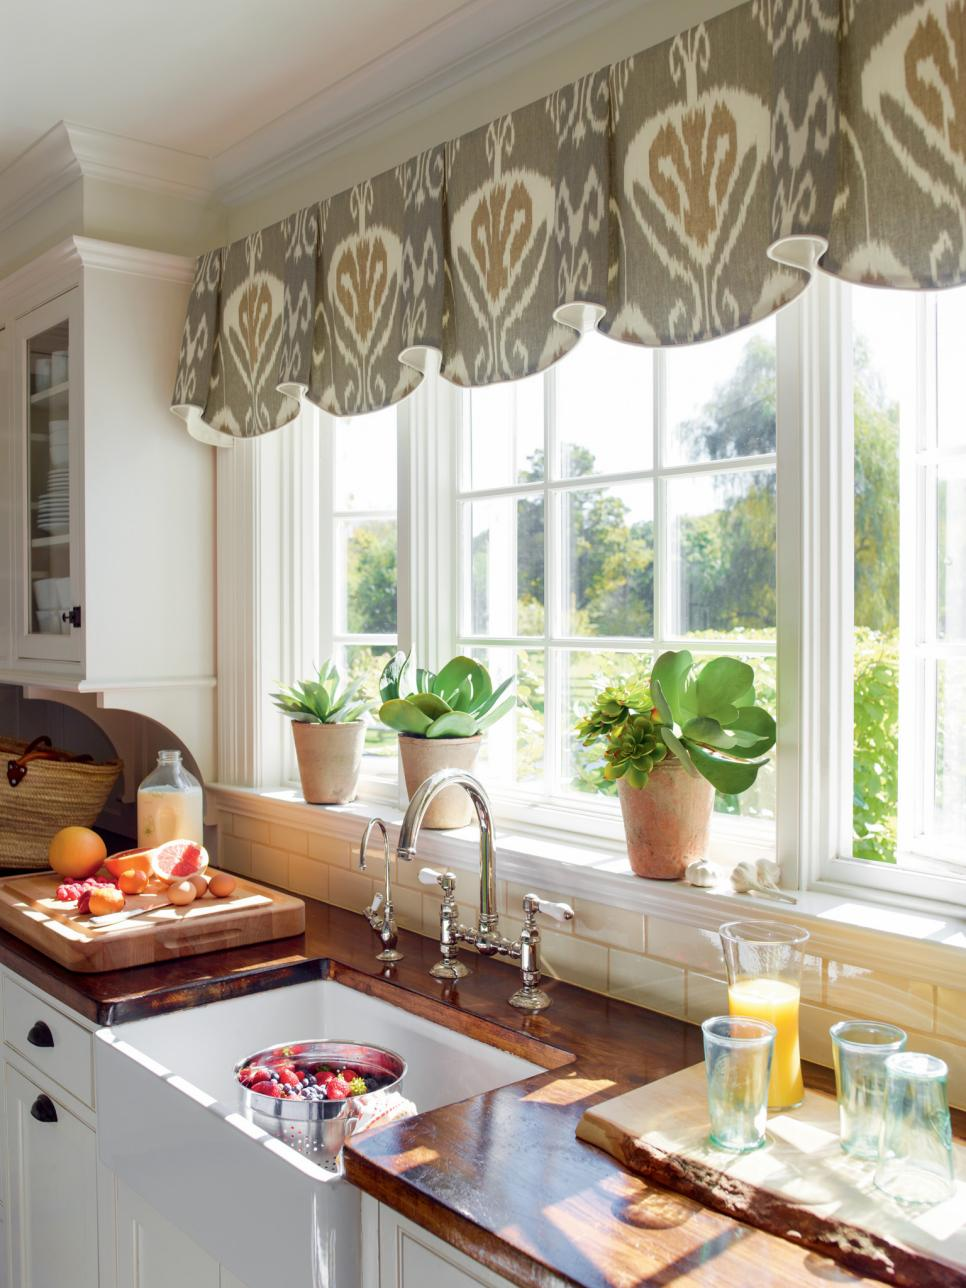 Window Treatment Design Ideas nice window treatments for living room ideas awesome modern interior ideas with curtains amazing living room Coordinated Charm Fabric Based Window Treatments